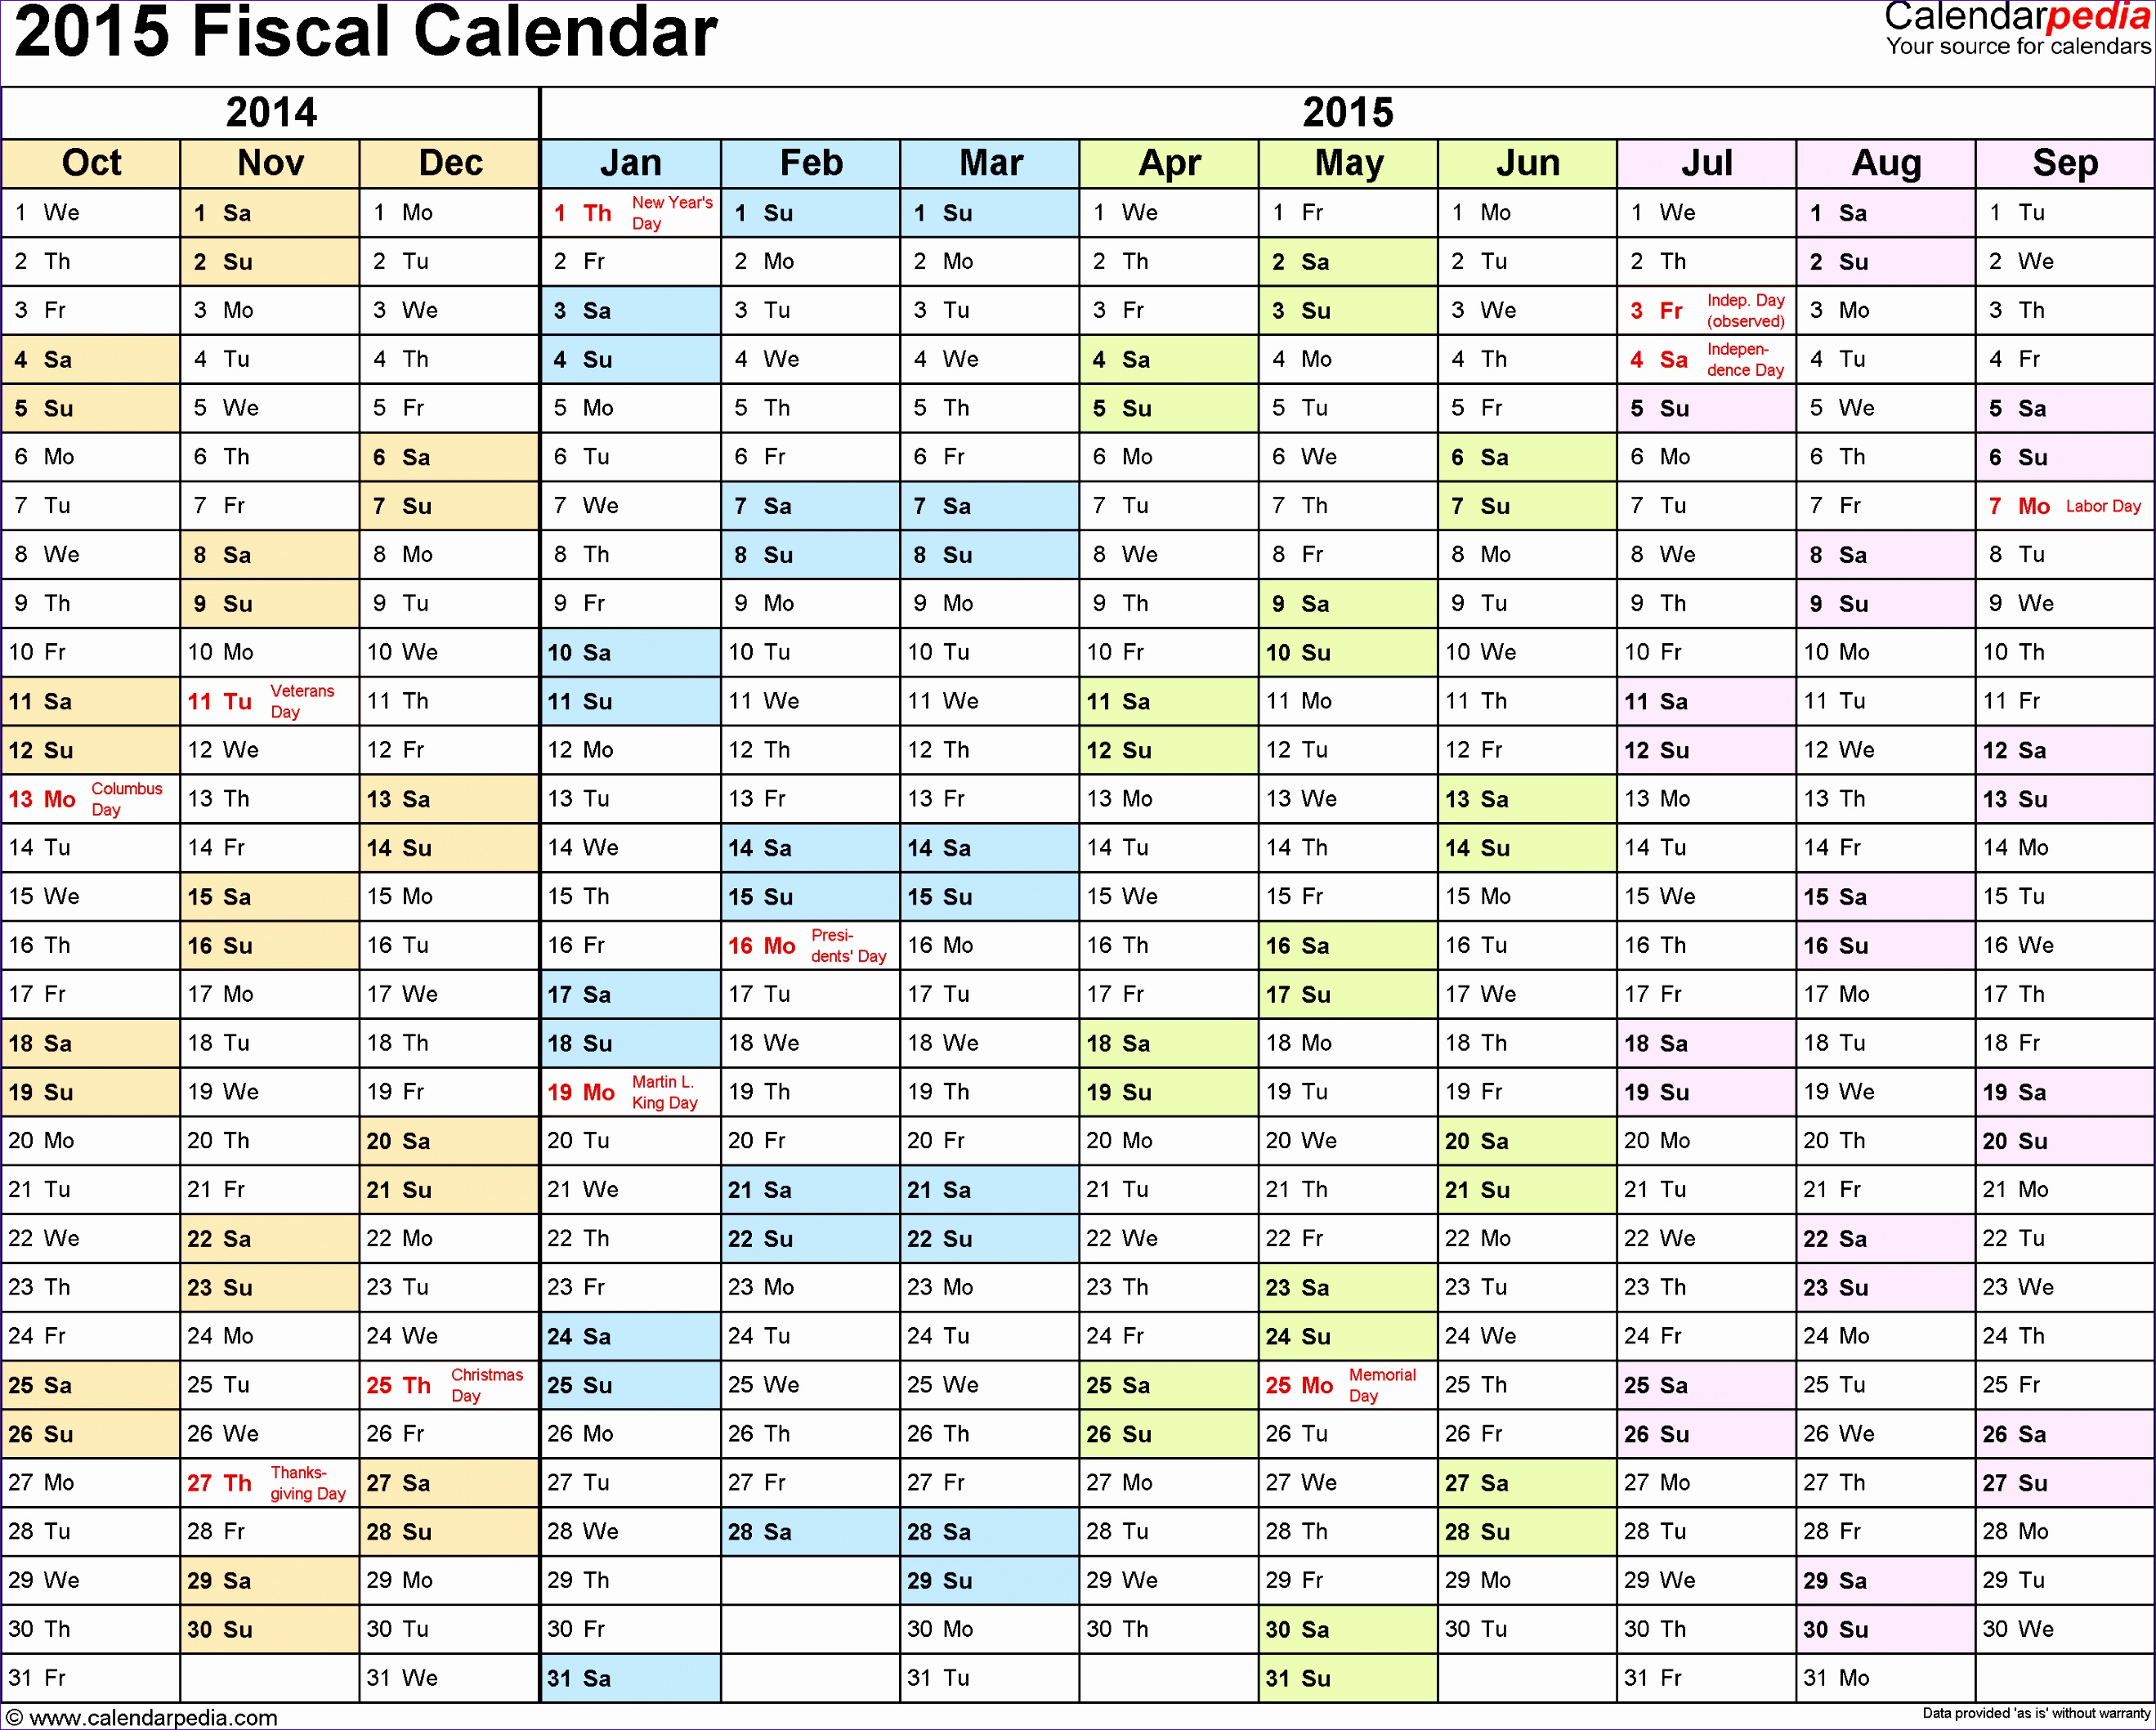 Excel Financial Statement Template Ecgxc Best Of Fiscal Calendars 2015 as Free Printable Excel Templates